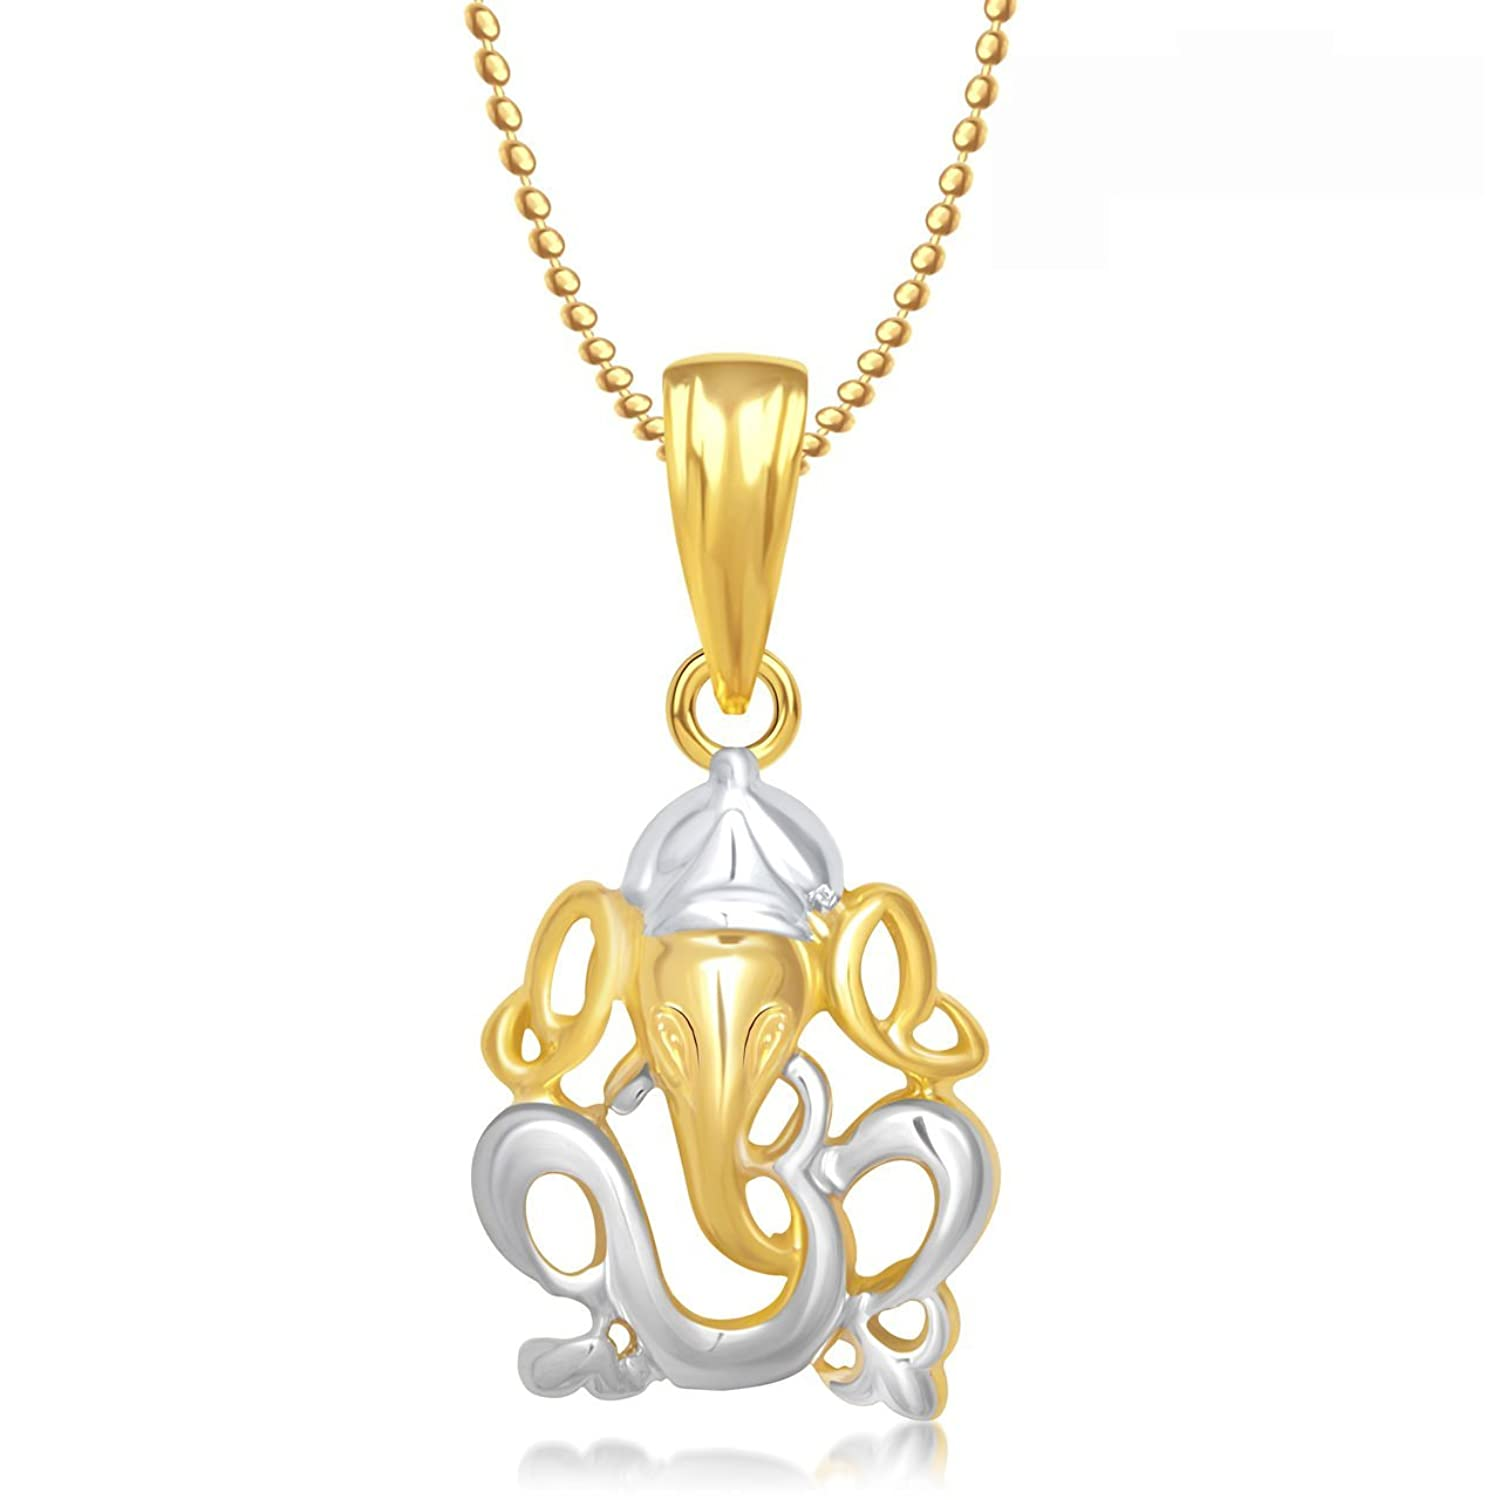 lockets a with pendant com kalyan male gold jewellers candere pendants mens for buy price men online company